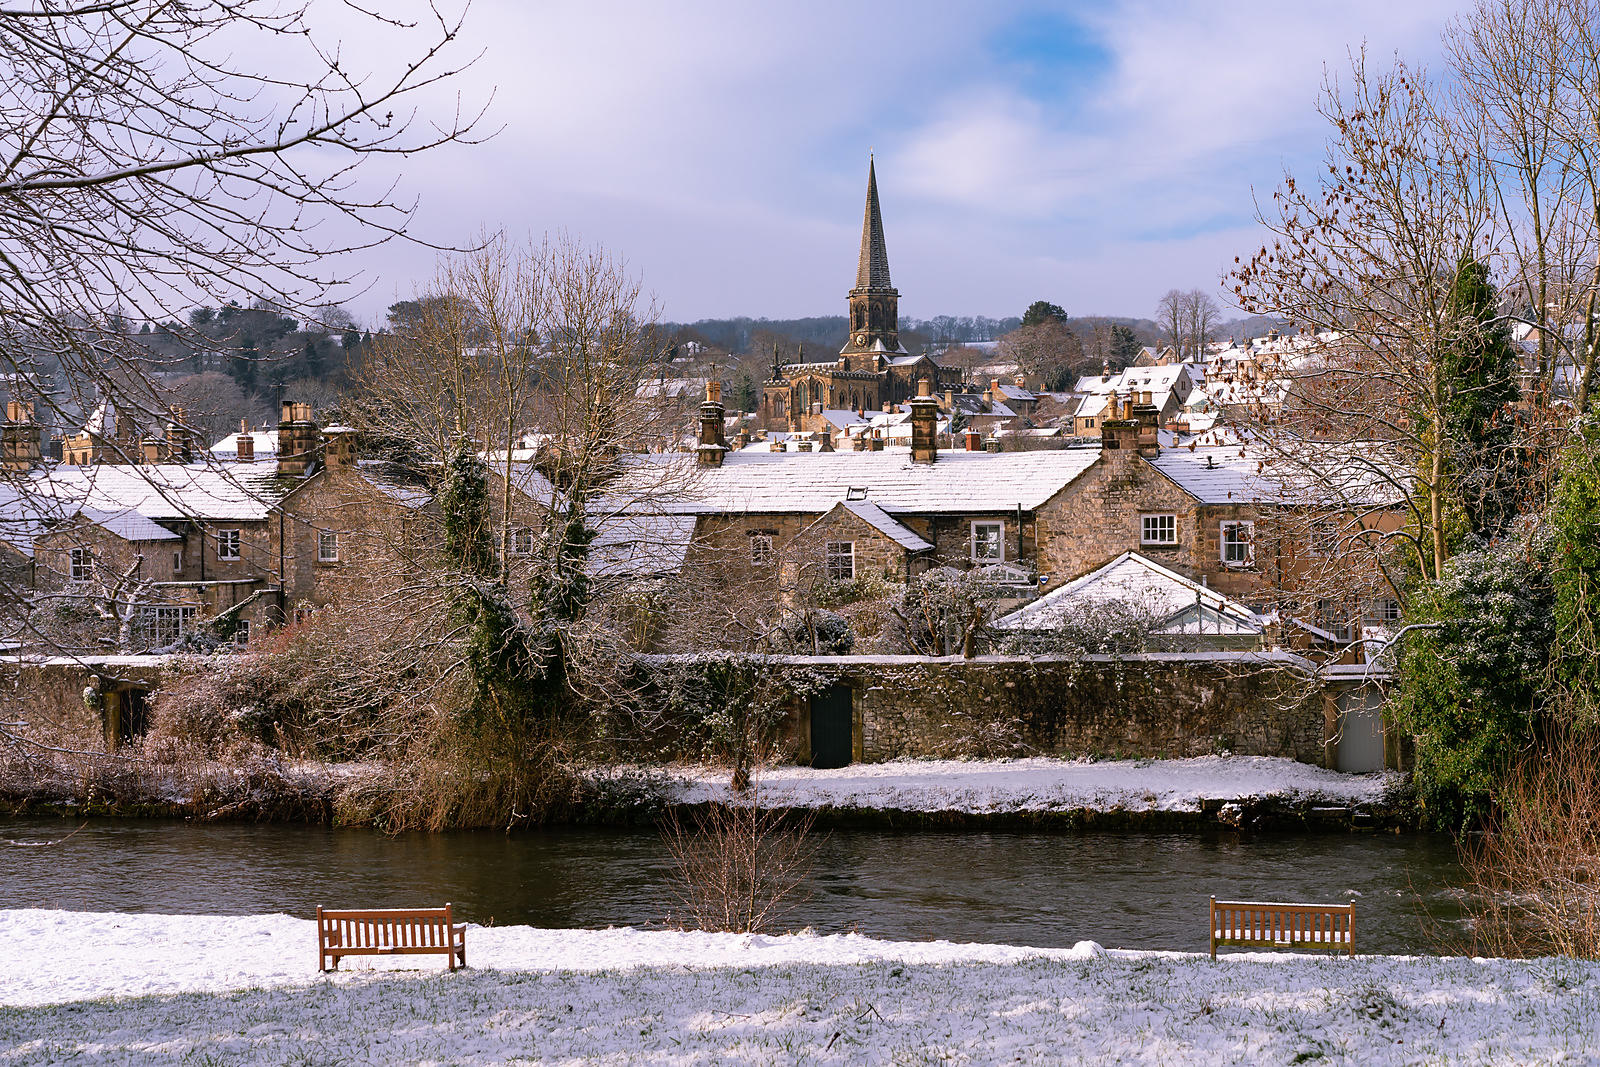 Bakewell on a snowy January morning